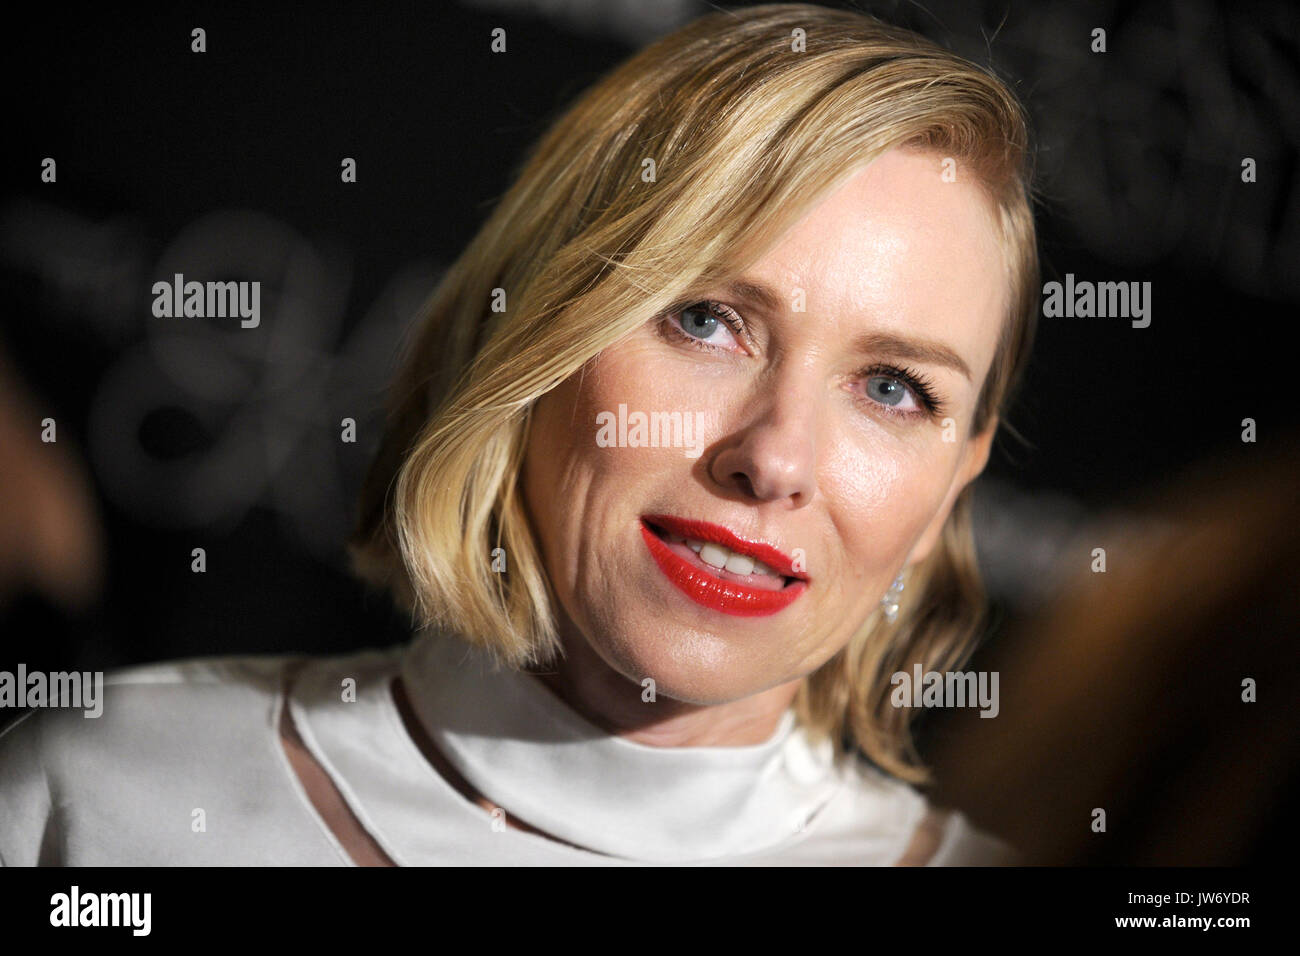 "Naomi Watts nimmt ""das Glas Schloss 'new york Screening in der sva Theater am 9. August 2017 in New York City. Stockfoto"